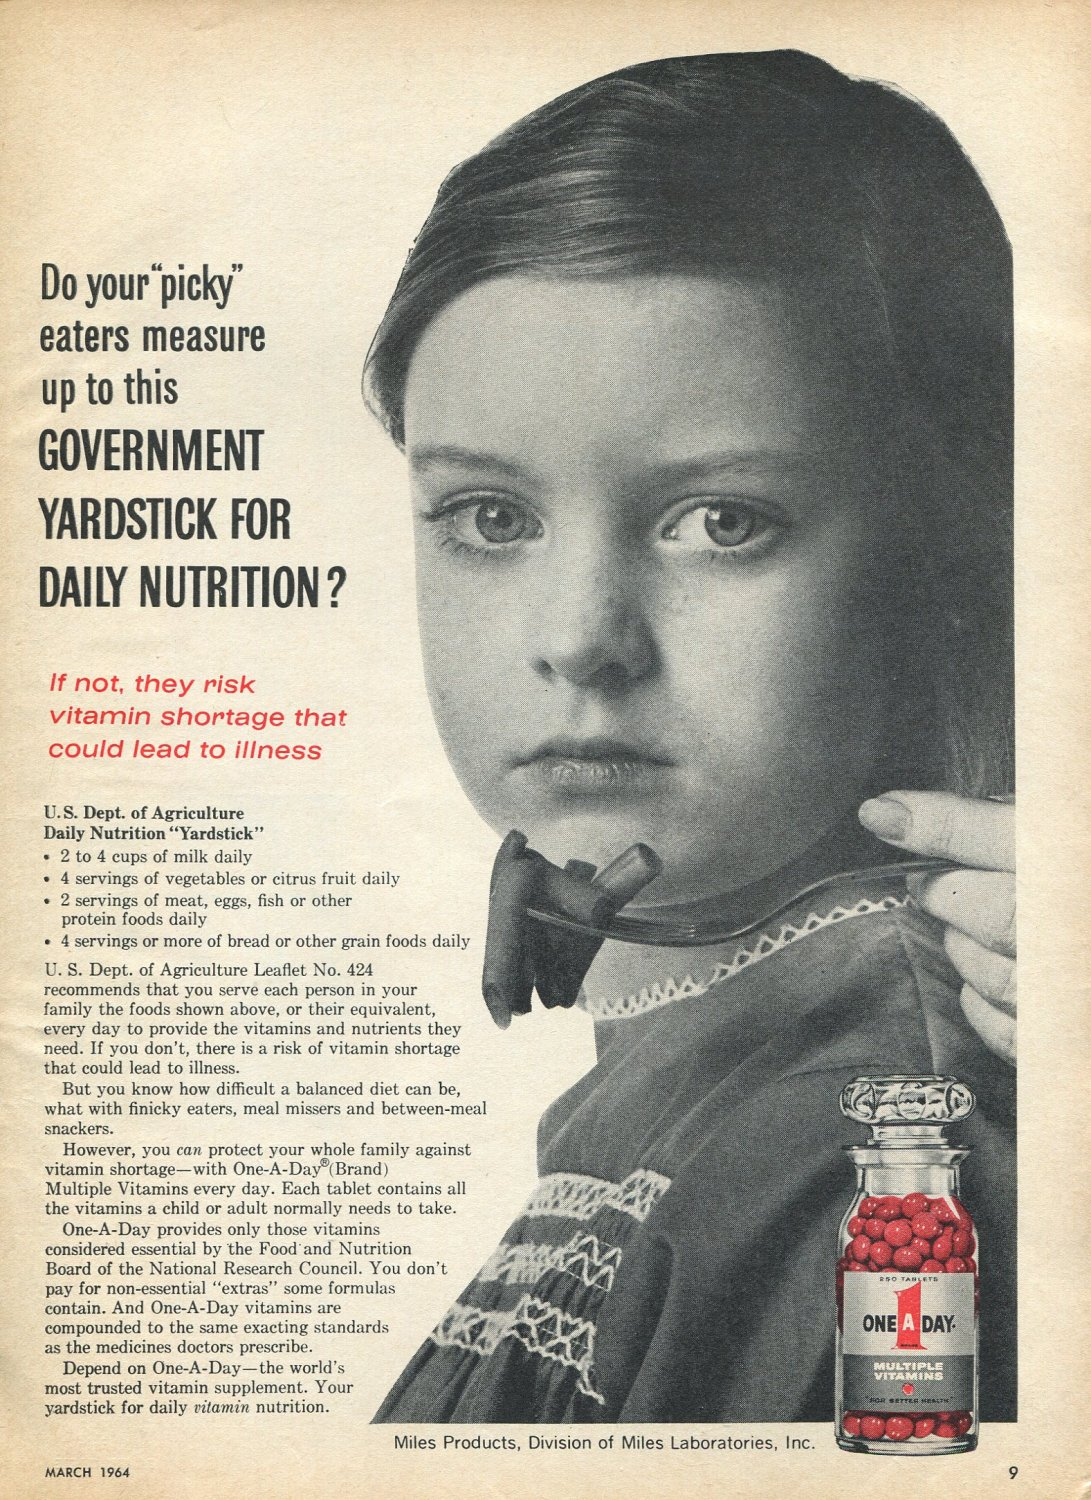 1964 One A Day Vitamins Picky Eaters Government Yardstick for Daily Nutrition Ad